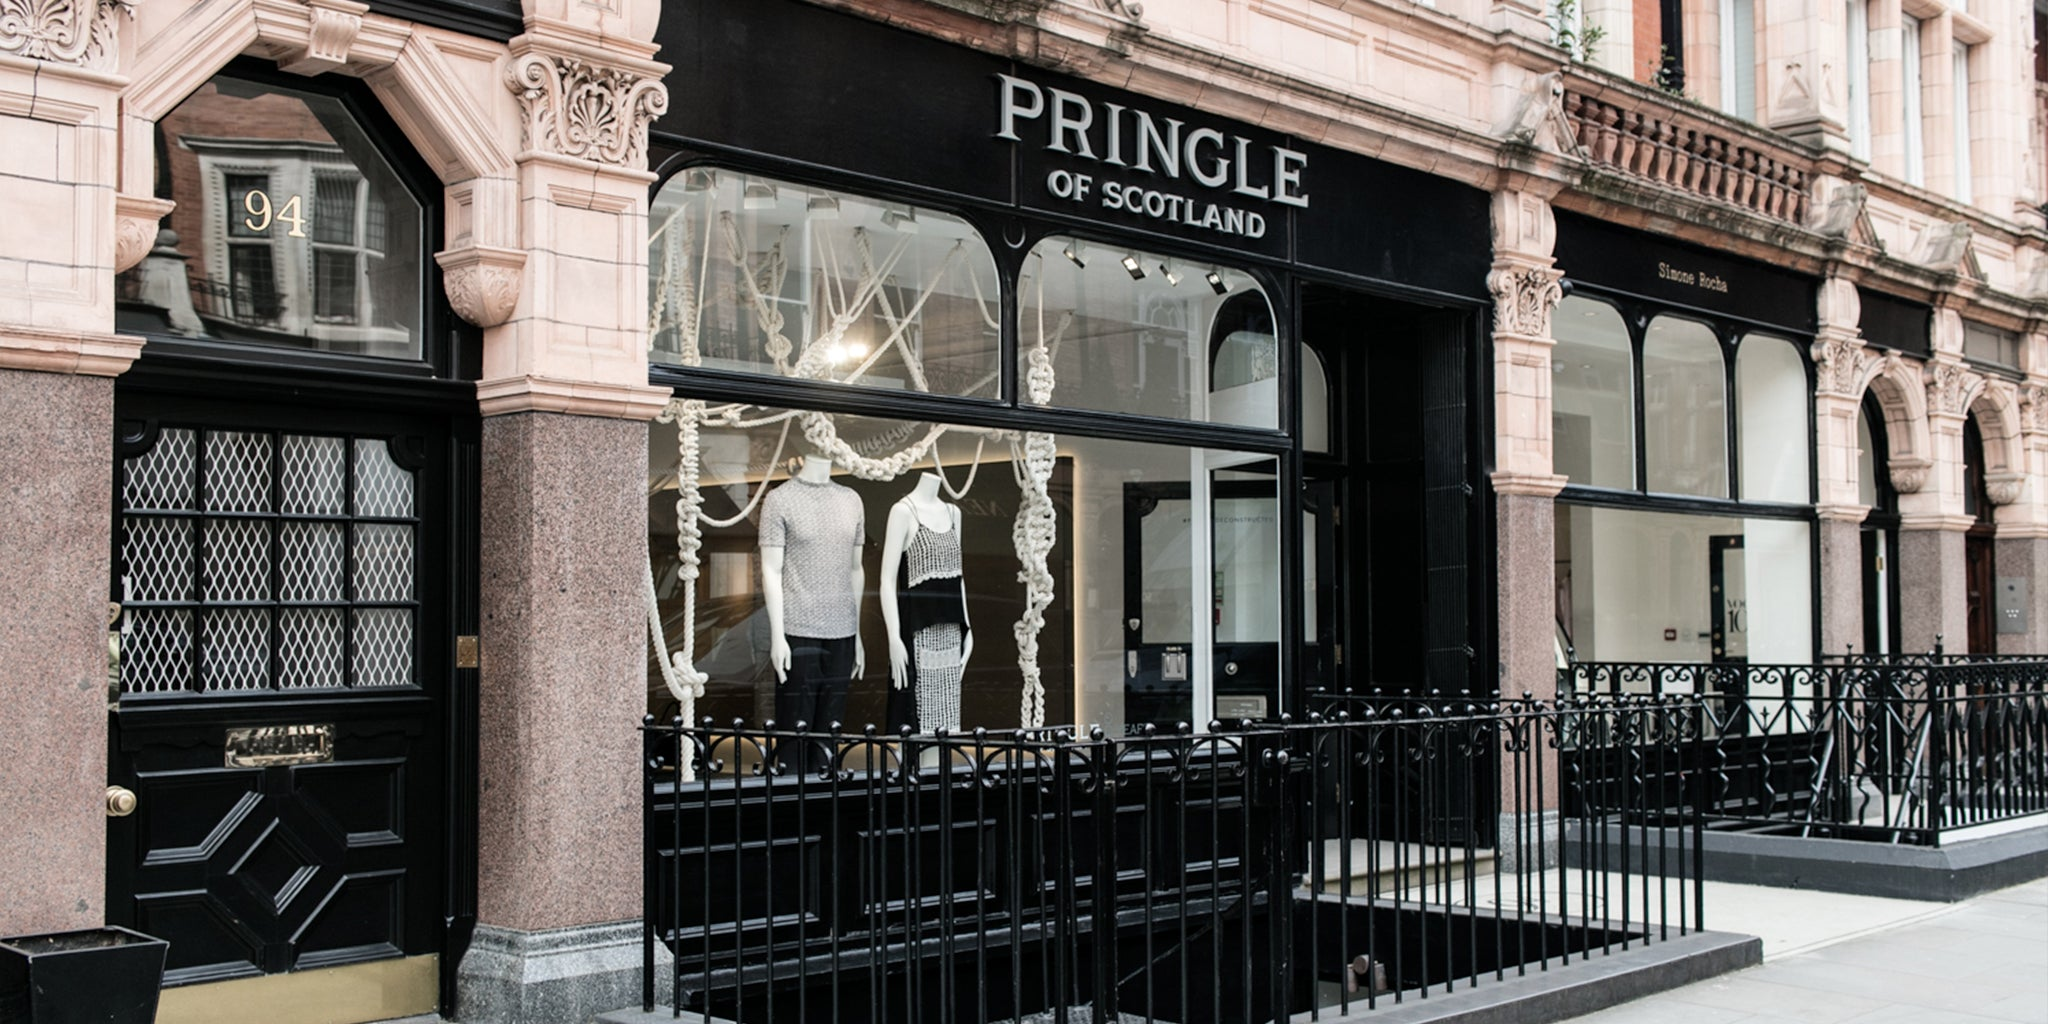 Pringle of Scotland Stores